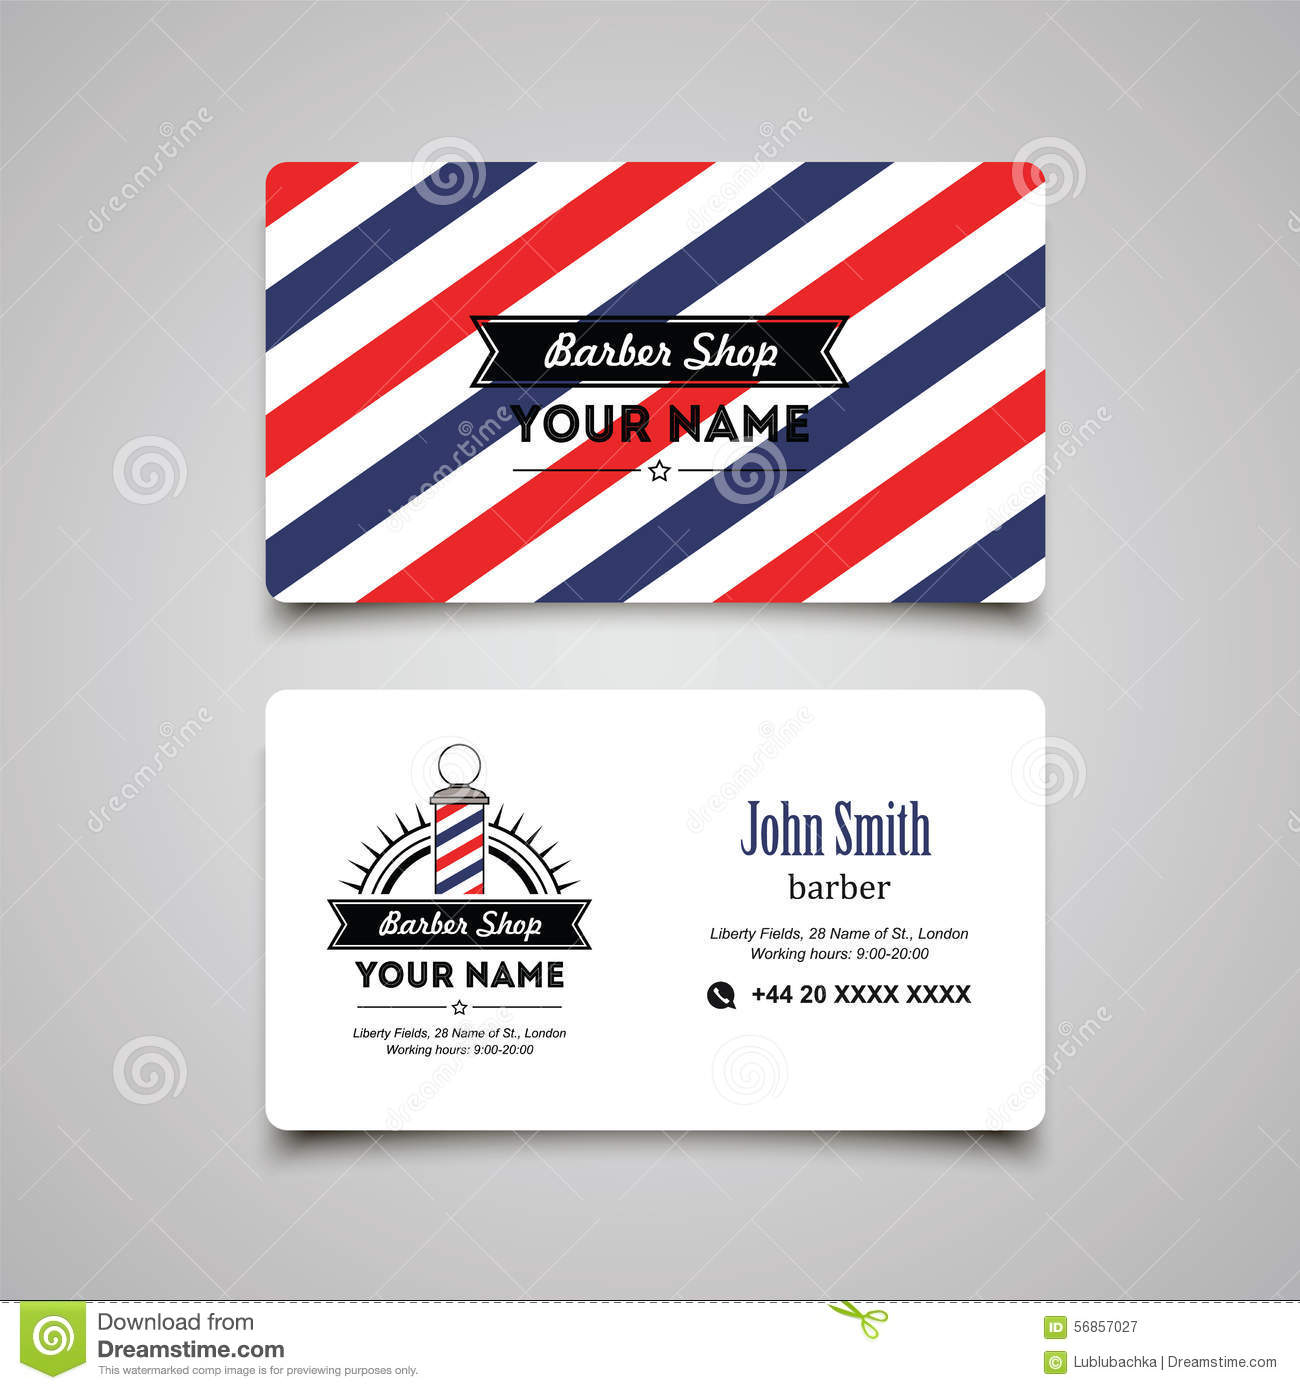 Hair salon barber shop business card design template stock vector hair salon barber shop business card design template reheart